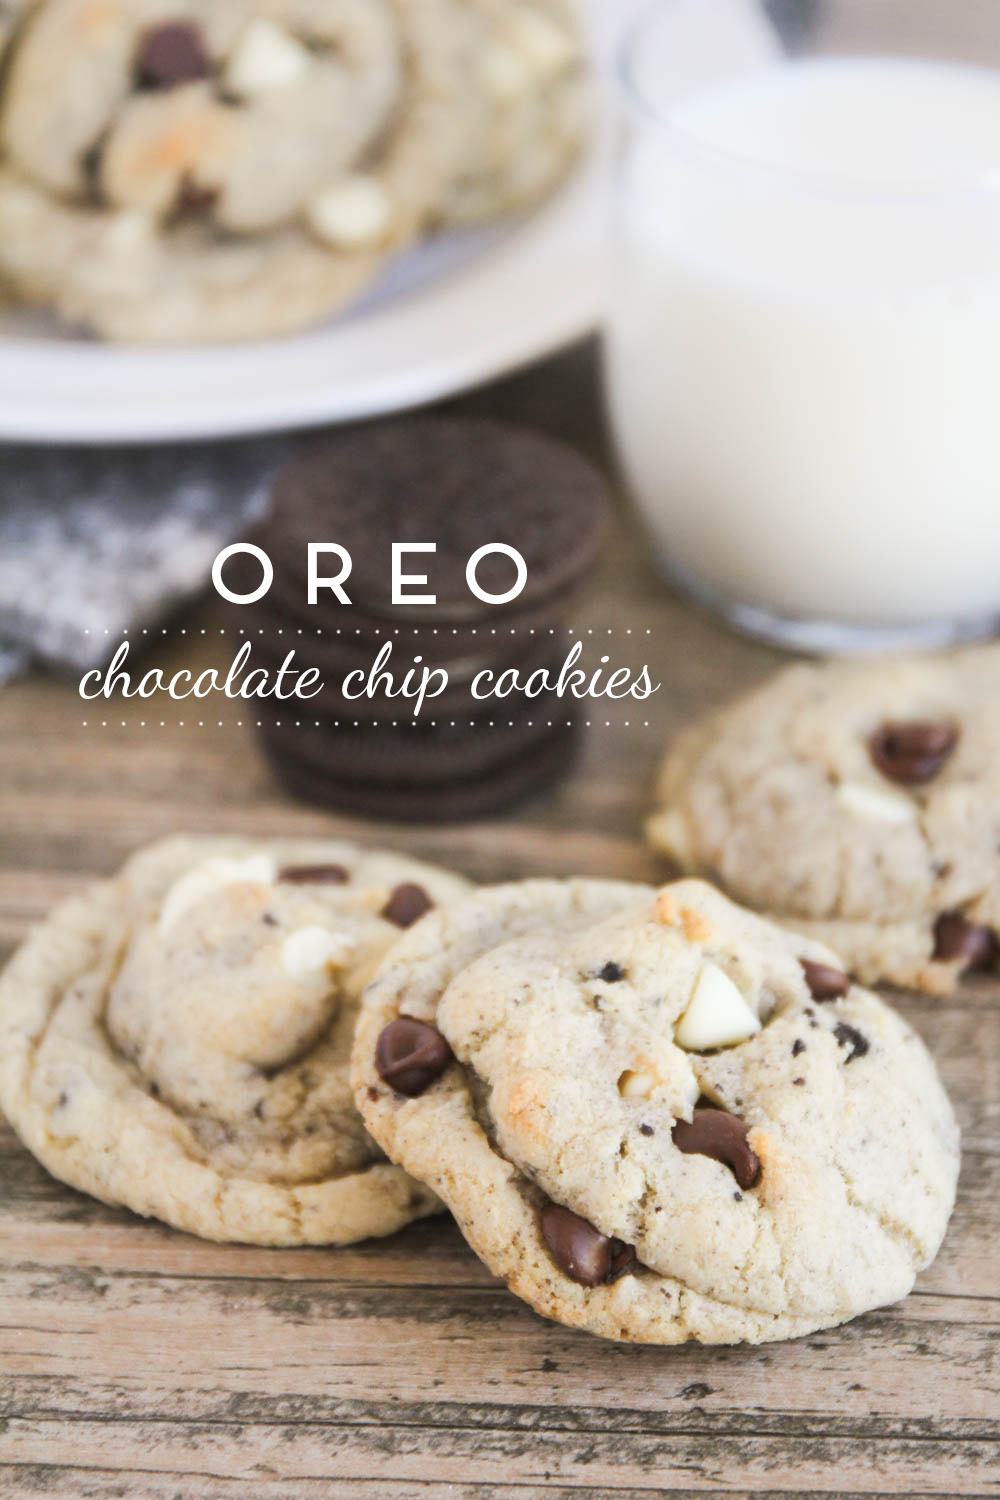 These Oreo chocolate chip cookies are super delicious and easy to make!